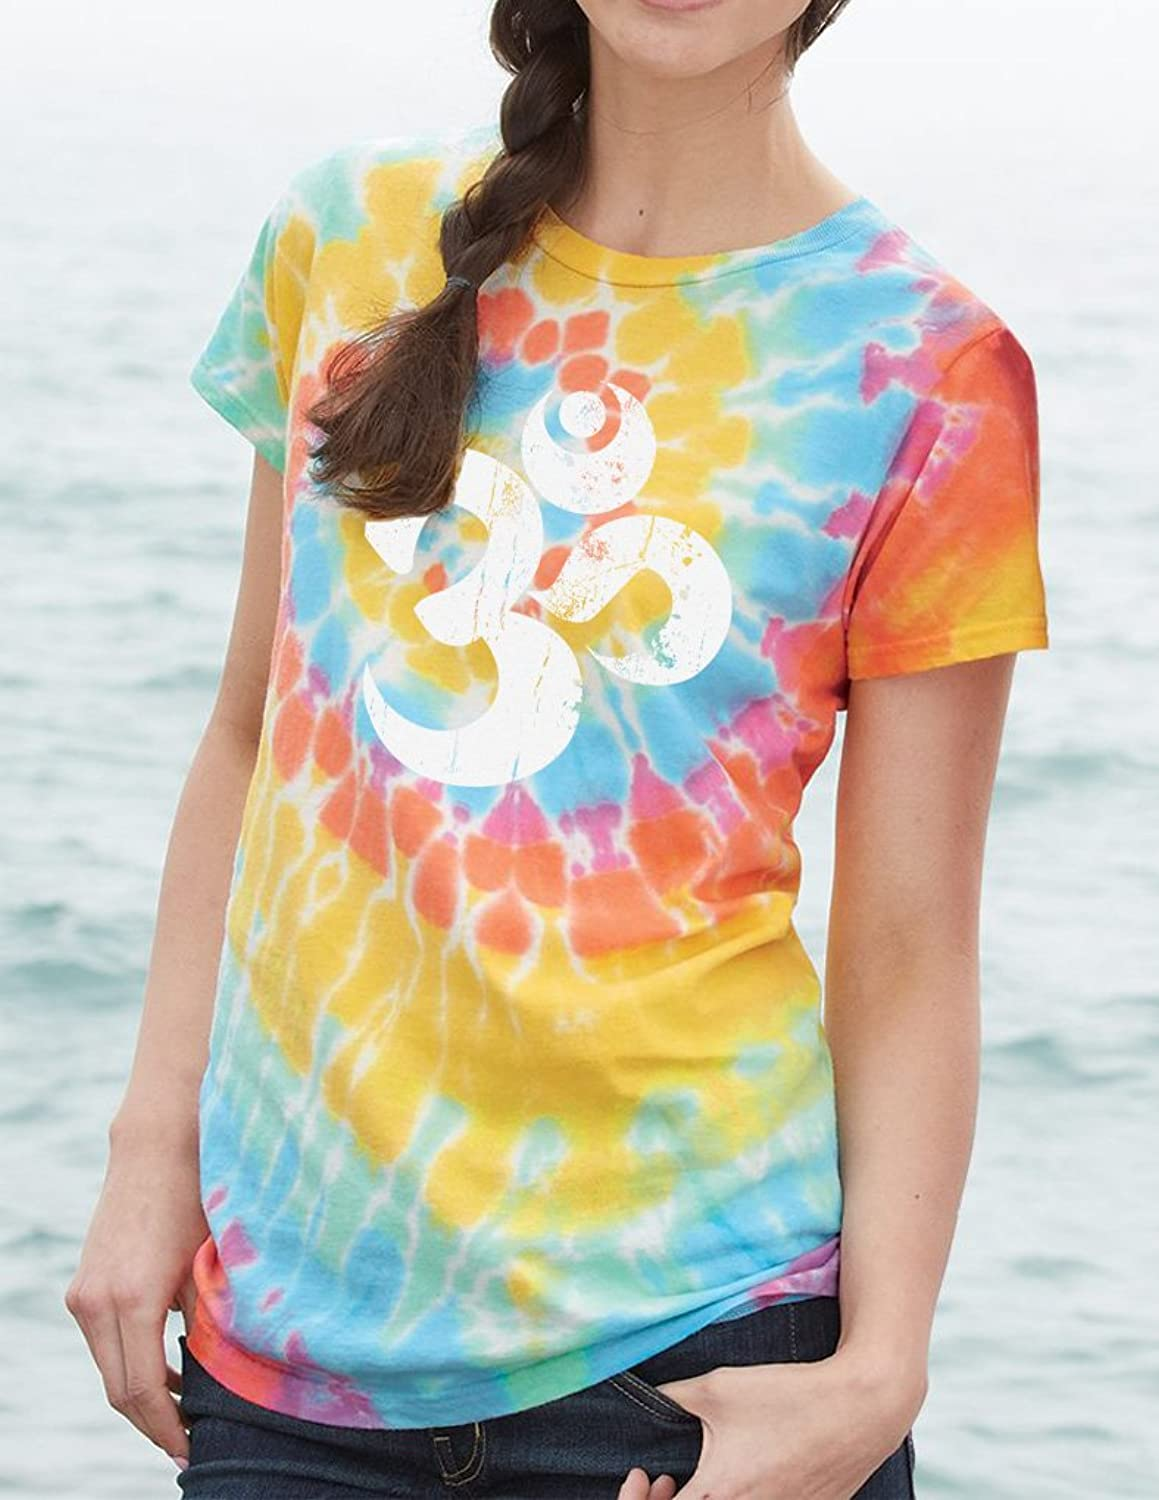 Yoga Clothing For You Ladies Distressed OM Tie Dye Tee Shirt